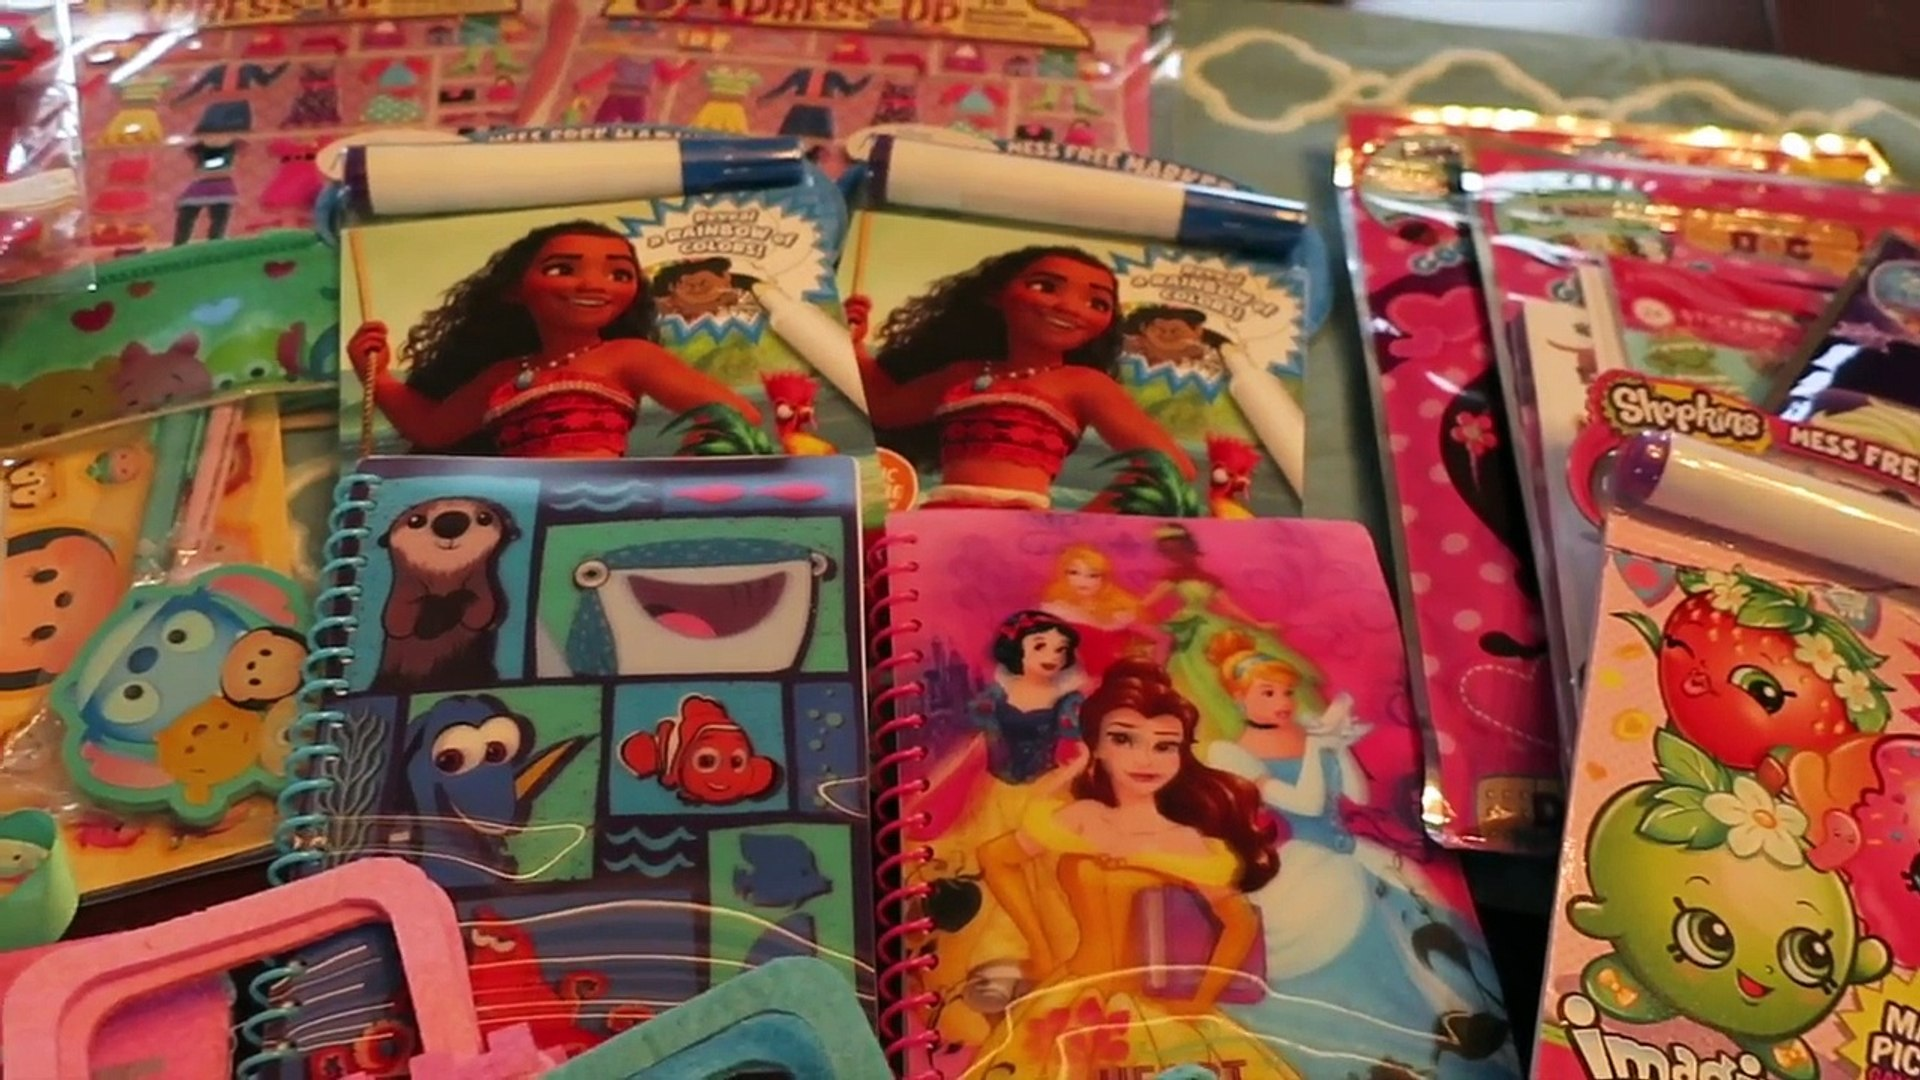 KIDS ROAD TRIP BOREDOM BUSTERS - TRAVEL ENTERTAINMENT ITEMS!   beingmommywithstyle